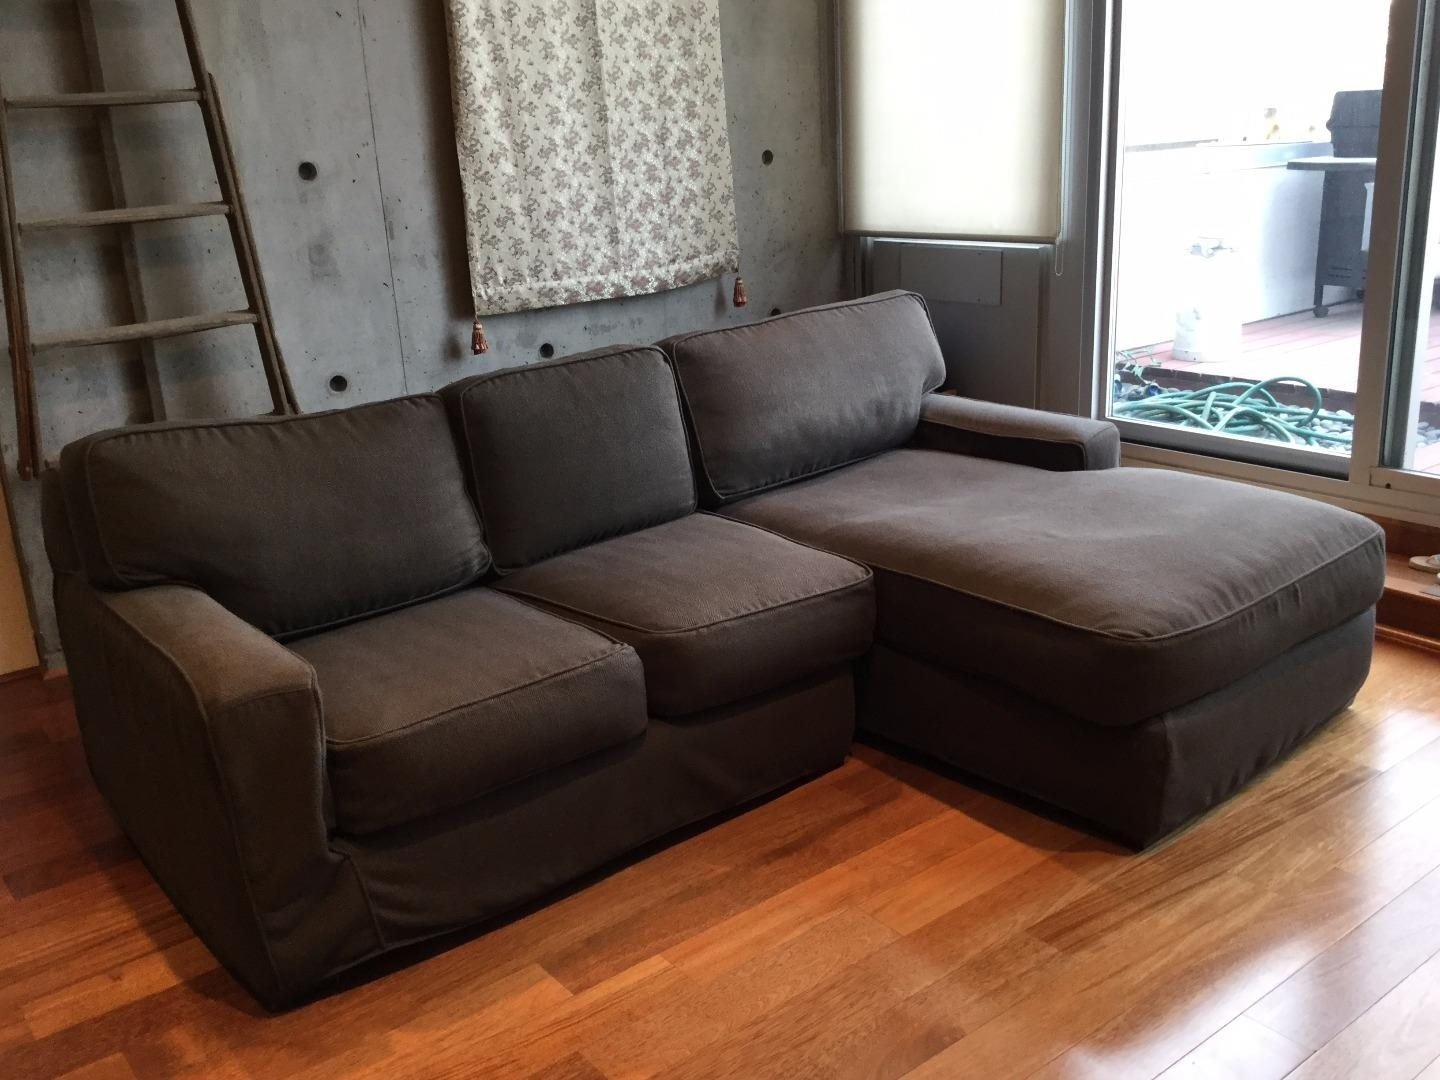 Quatrine Upholstered Sectional Sofa: For Sale In San Francisco, Ca pertaining to Quatrine Sectional Sofas